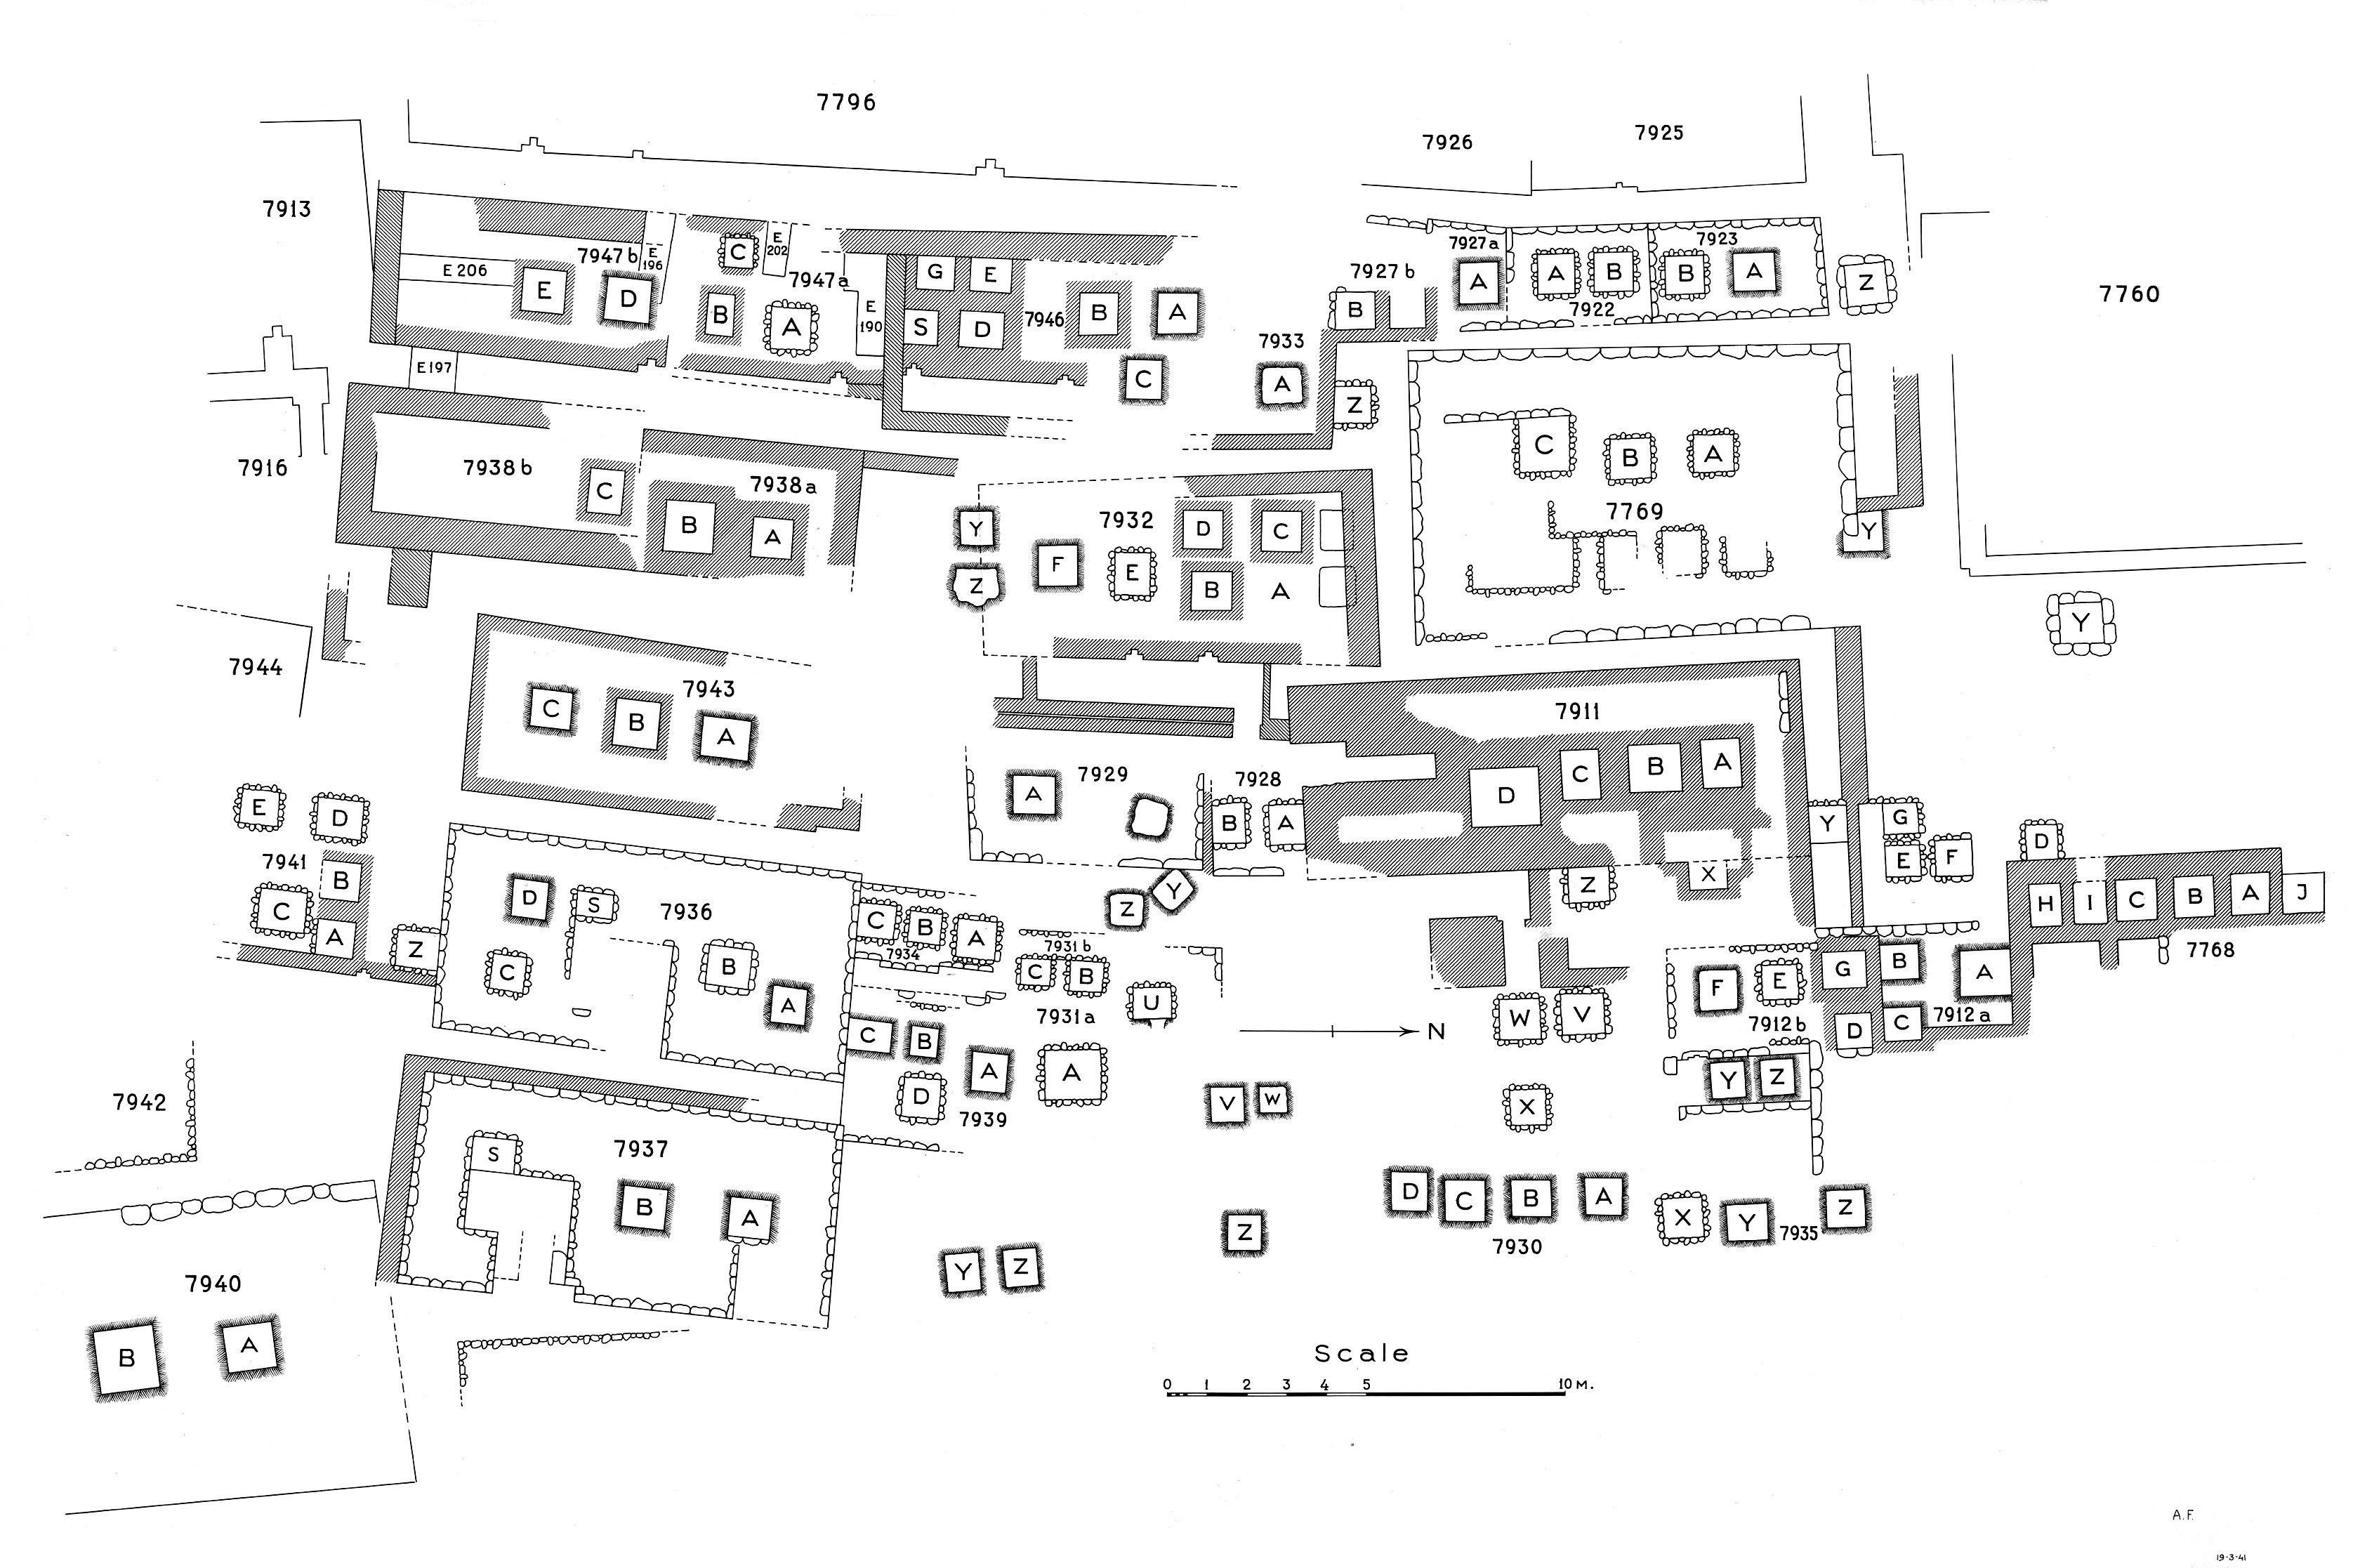 Maps and plans: Plan of cemetery G 7000: G 7900s (2 of 2)